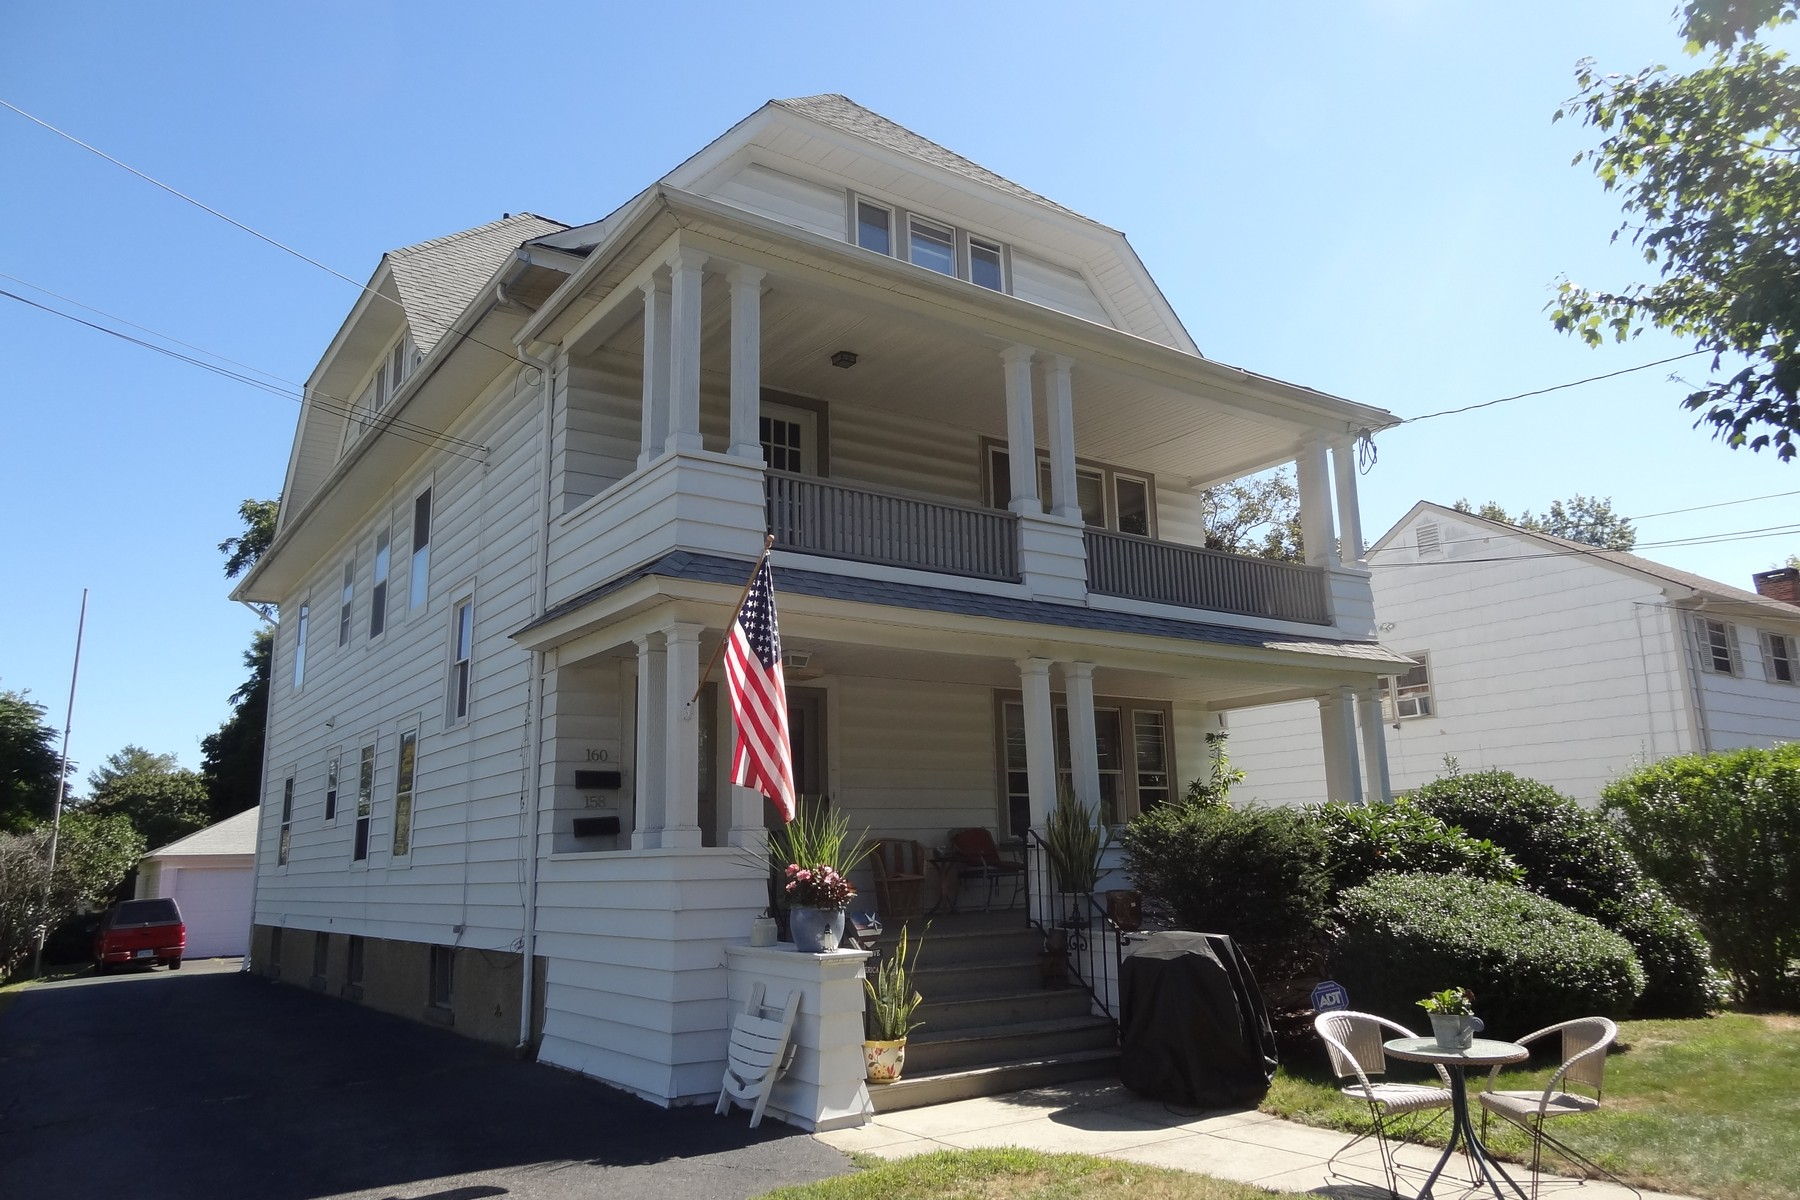 Property For Sale at Black Rock 2nd Floor Apartment with Spacious Rooms and Great Porch